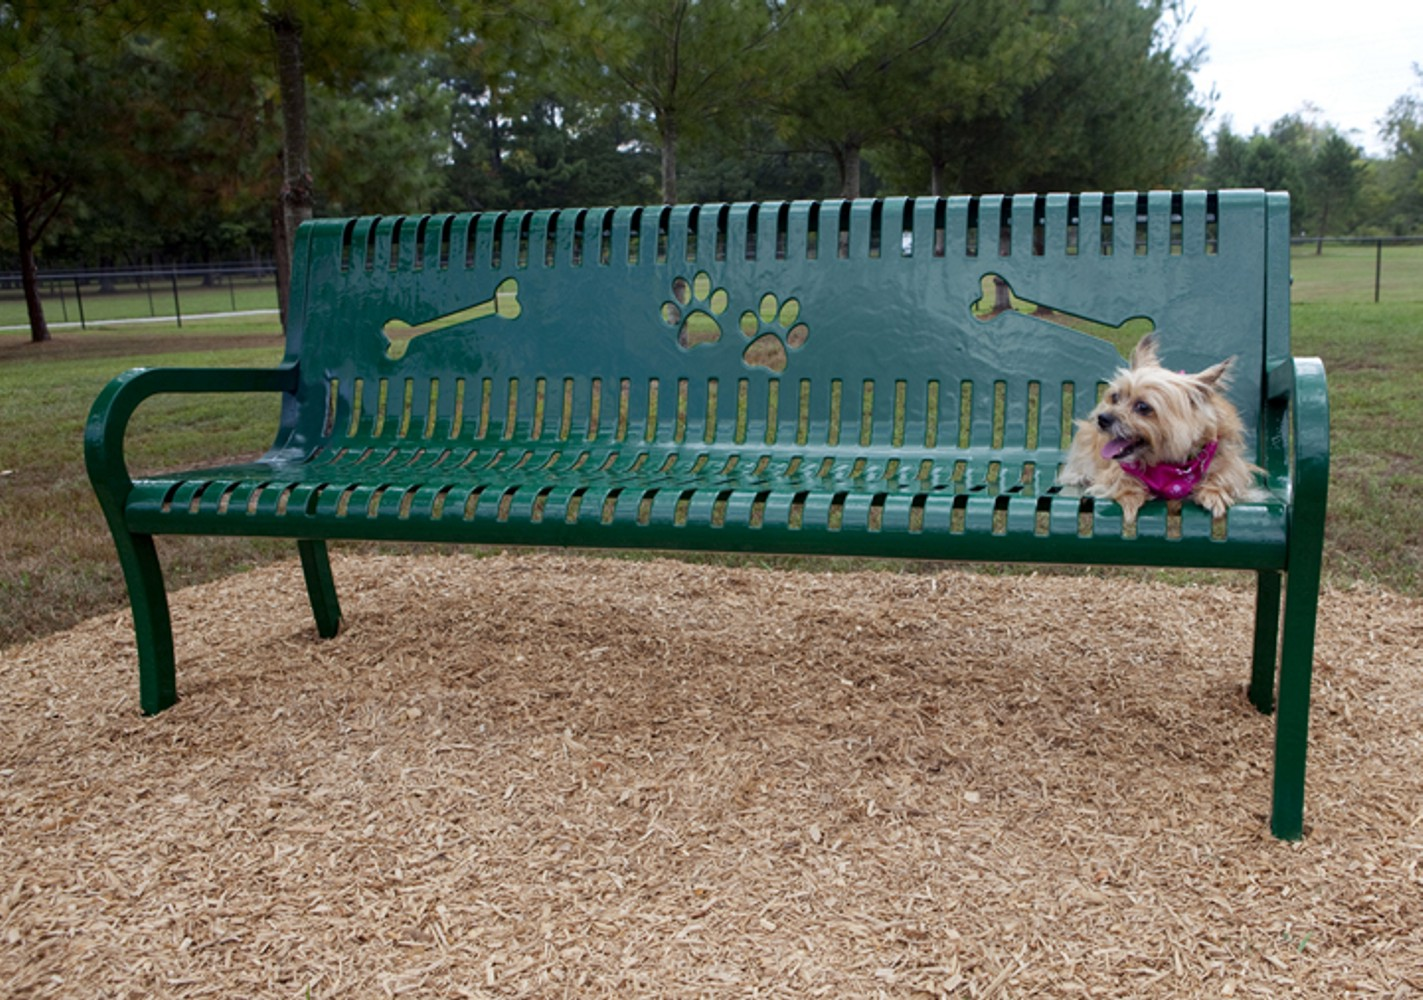 Pooch Perch Bench - Dog Park Equipment - American Parks Company